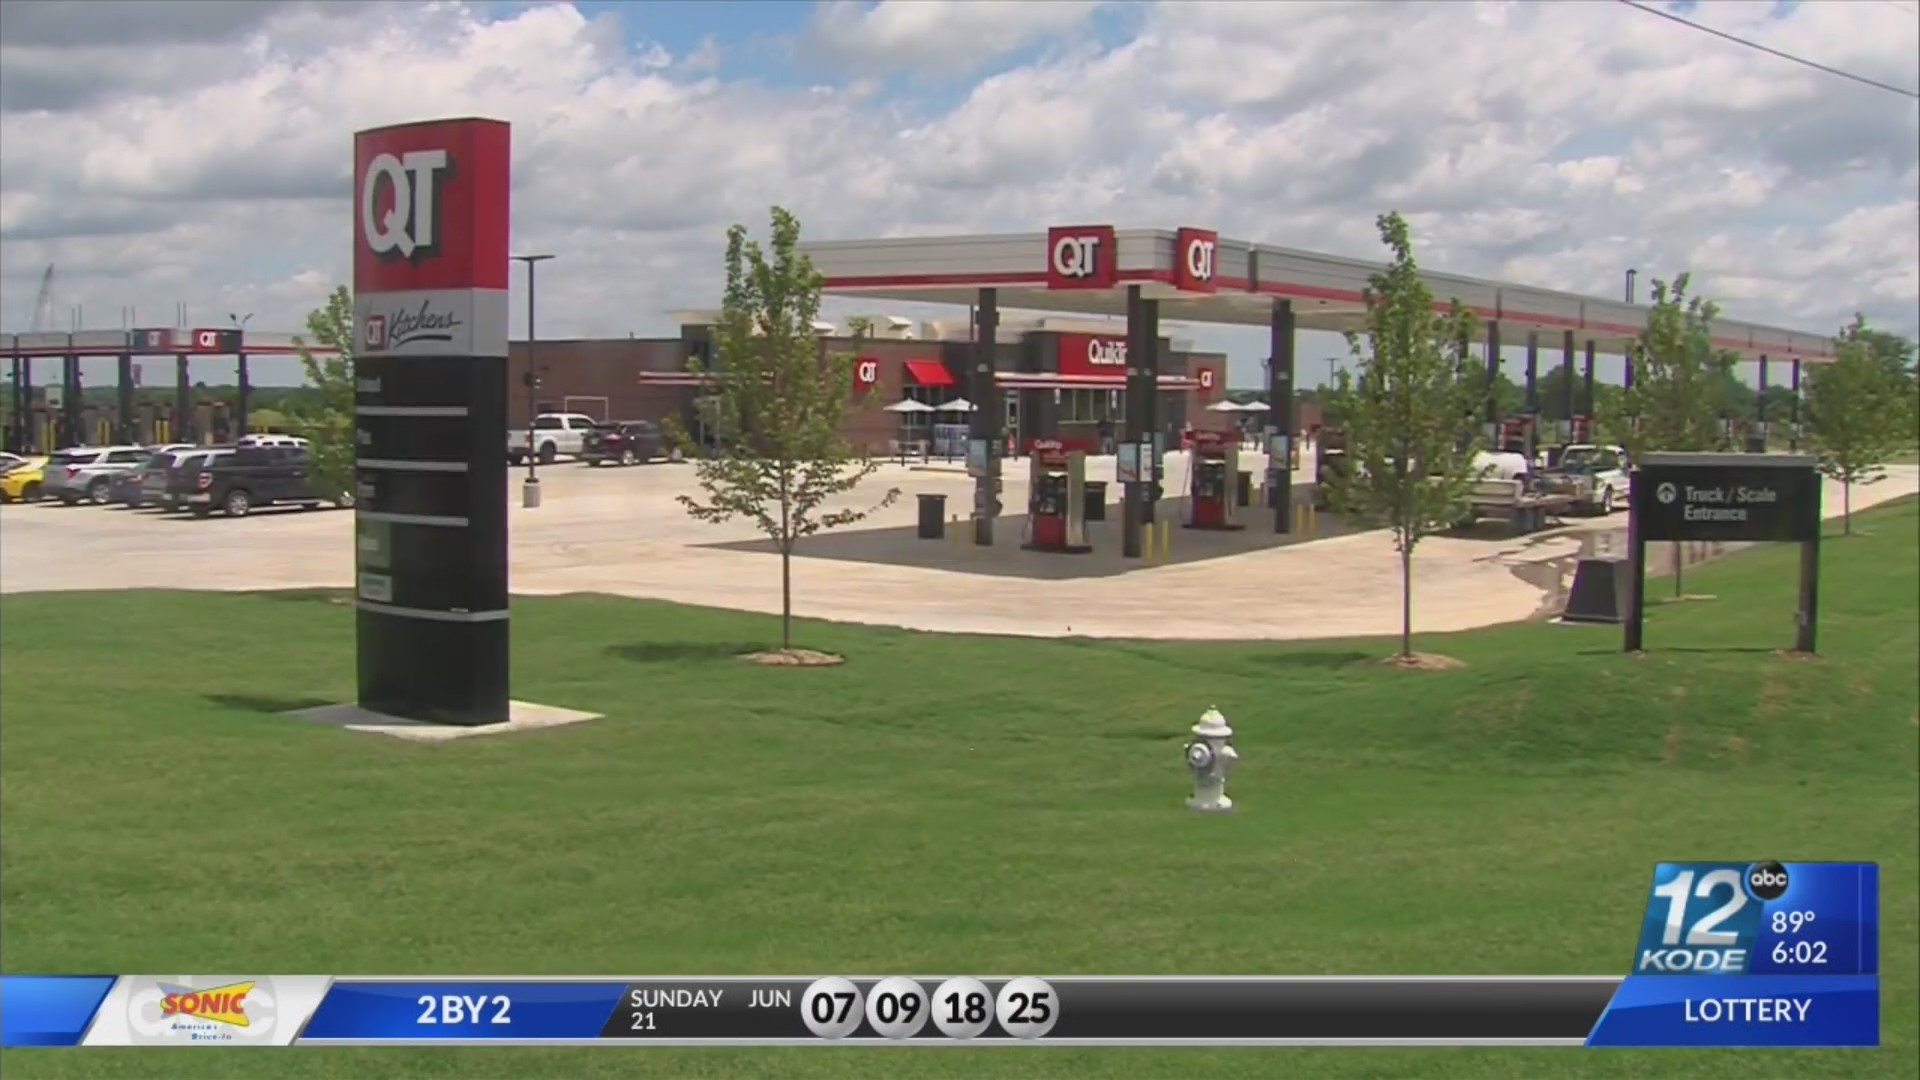 joplin s newest convenience store is set to open its doors later this week ksnf kode fourstateshomepage com joplin s newest convenience store is